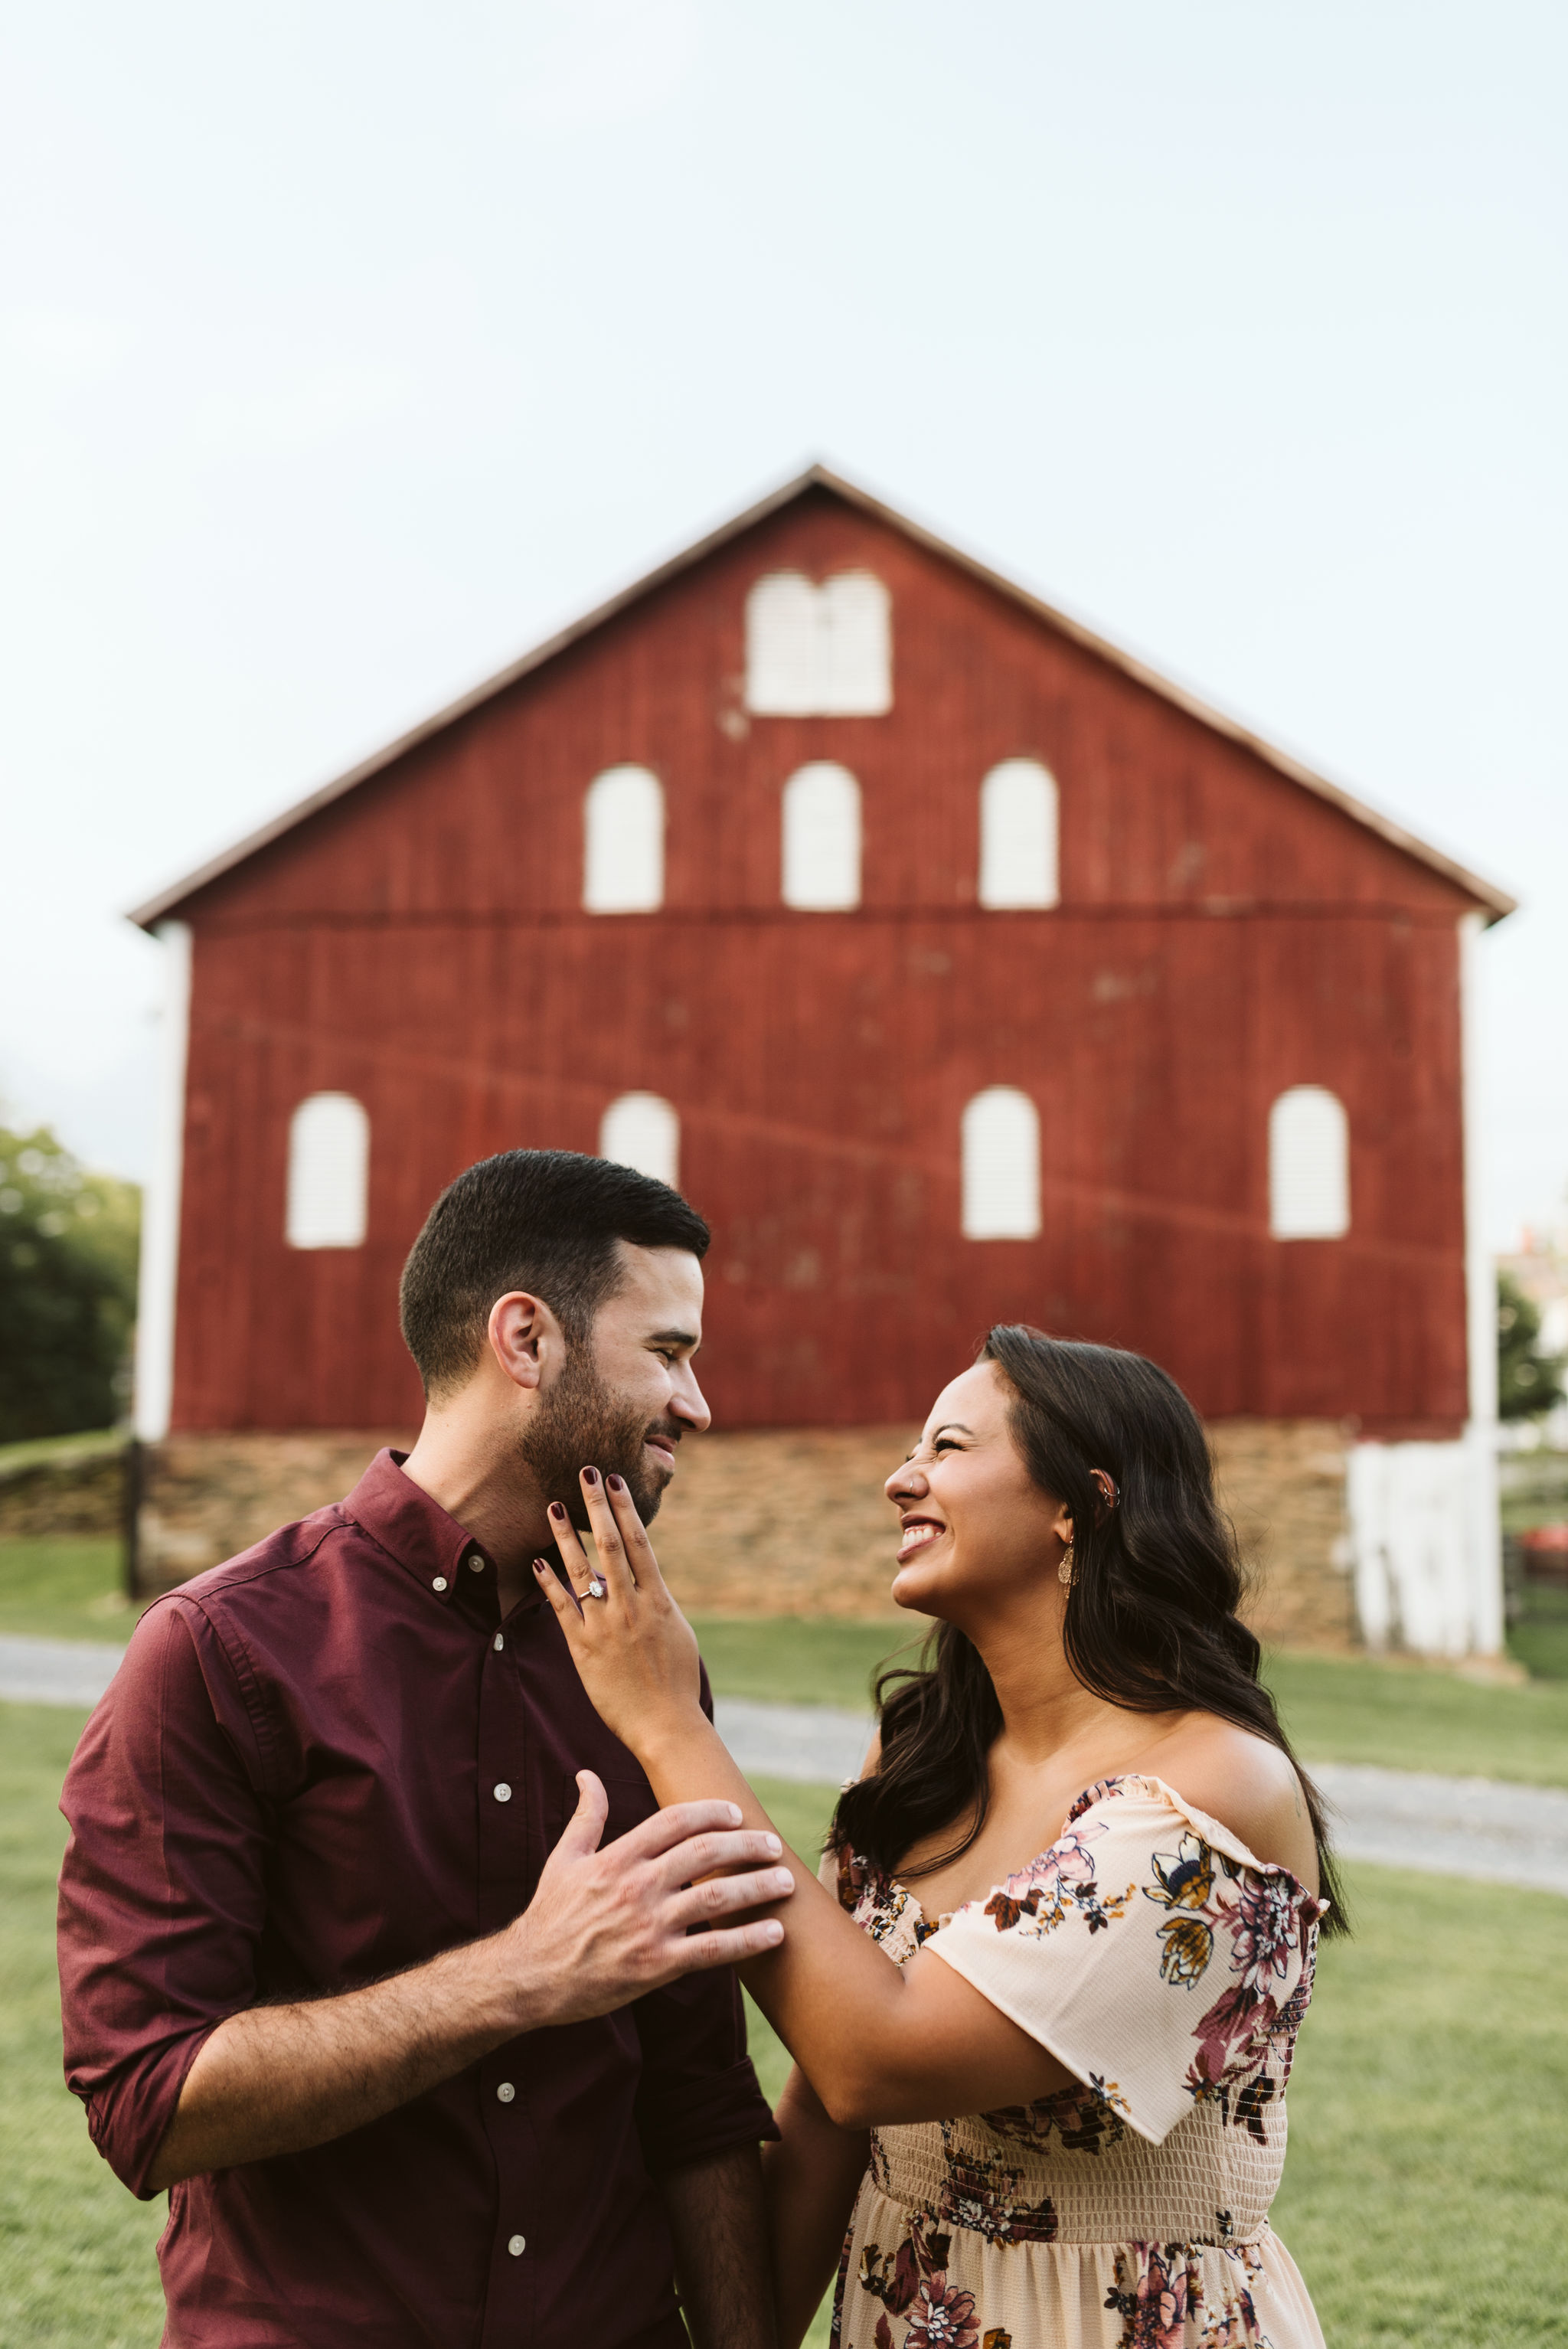 Frederick Maryland, Baltimore Wedding Photographer, Engagement, Bend in the River Farm, Outdoor, Rustic, Nature, Bride and Groom Laughing Together, Photo of Engagement Ring